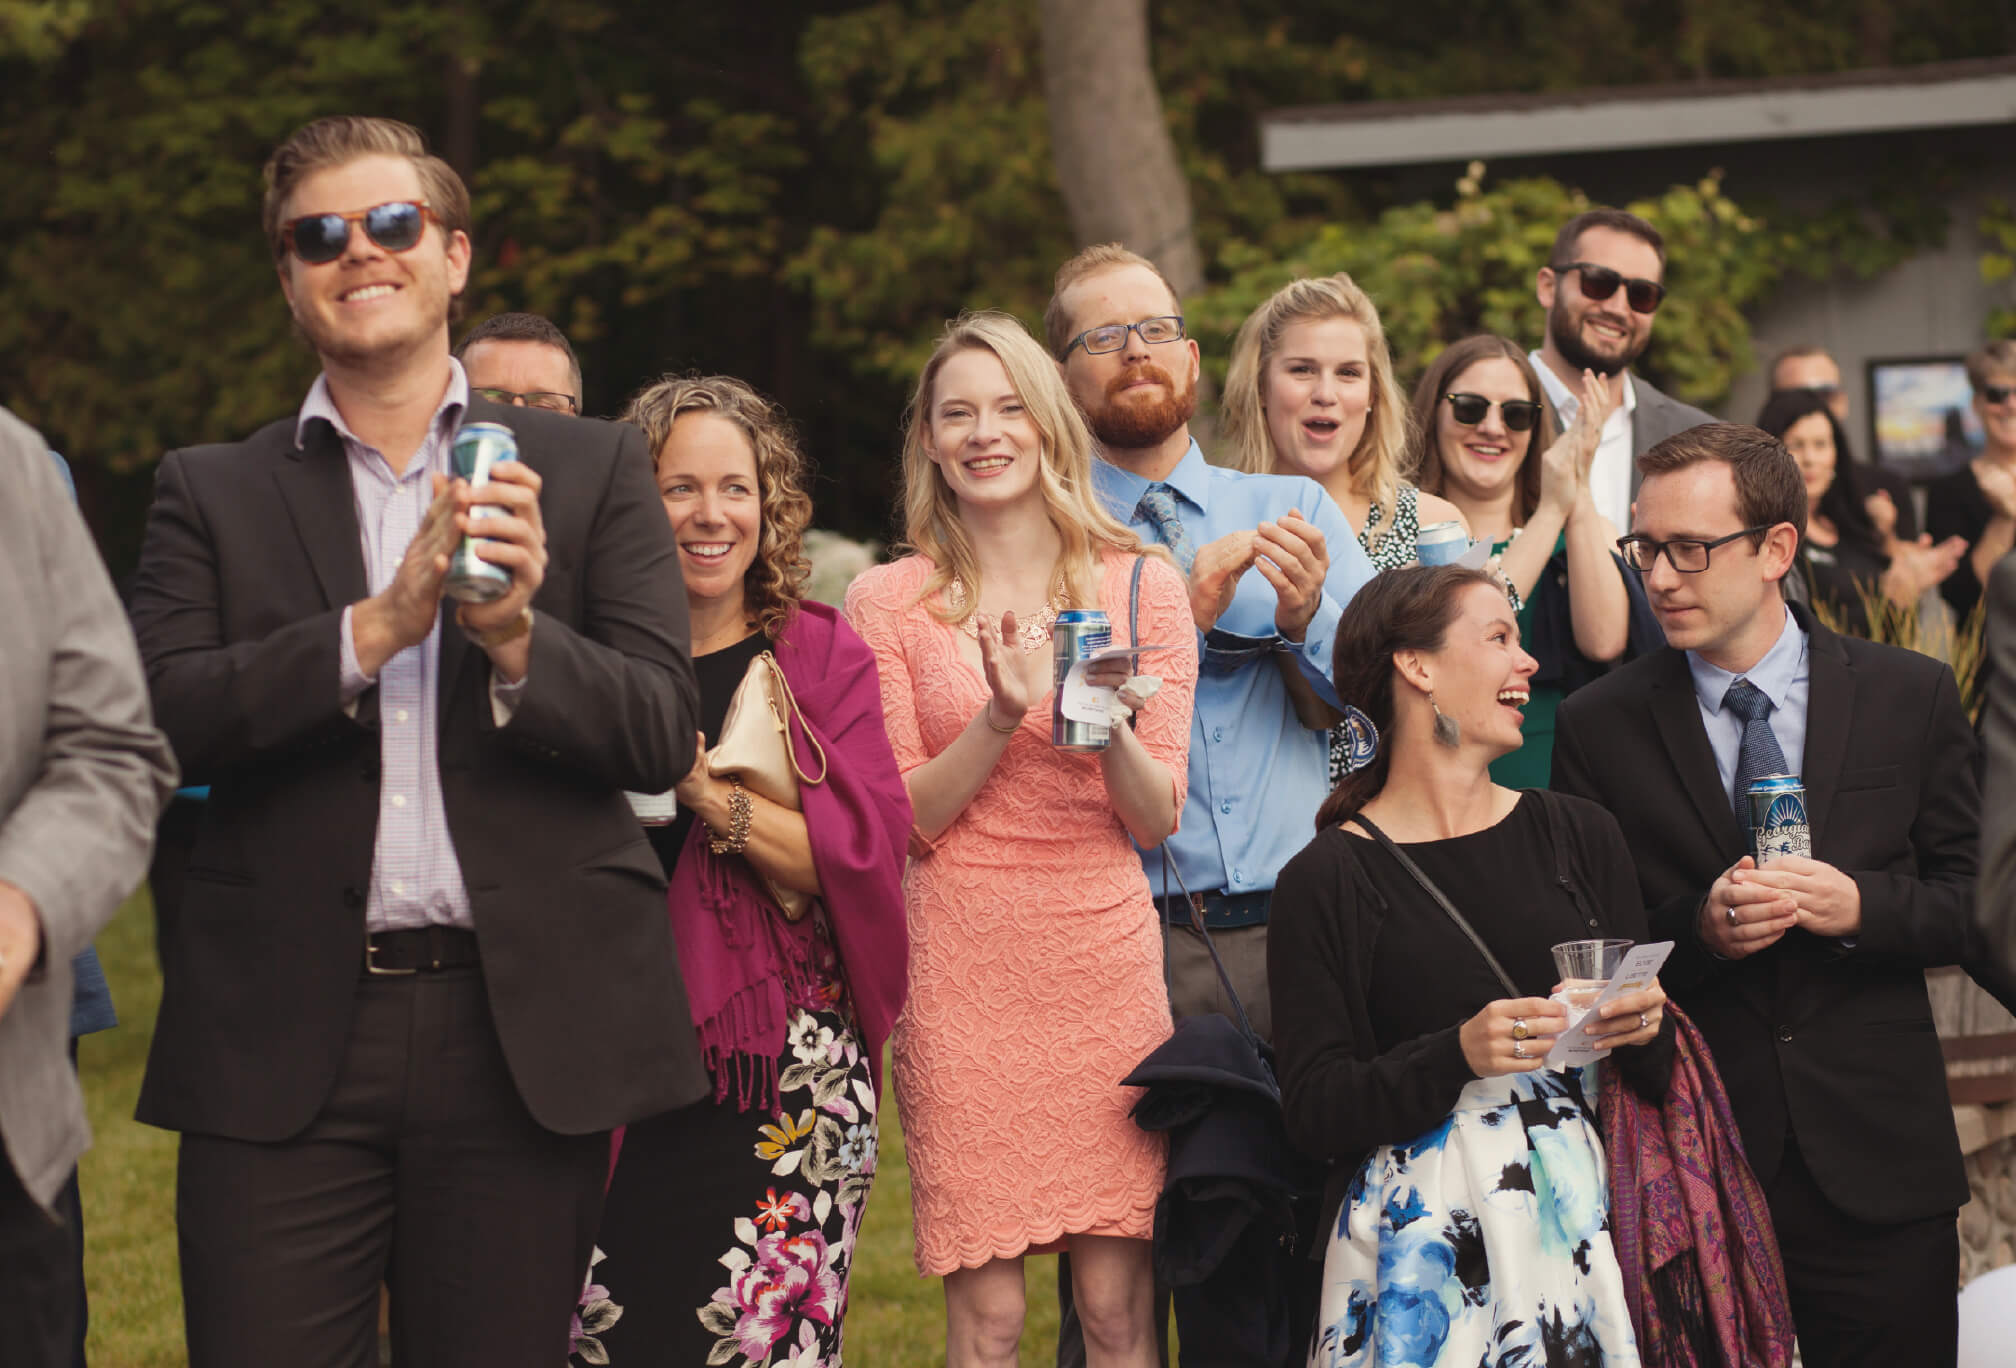 people clapping after ceremony